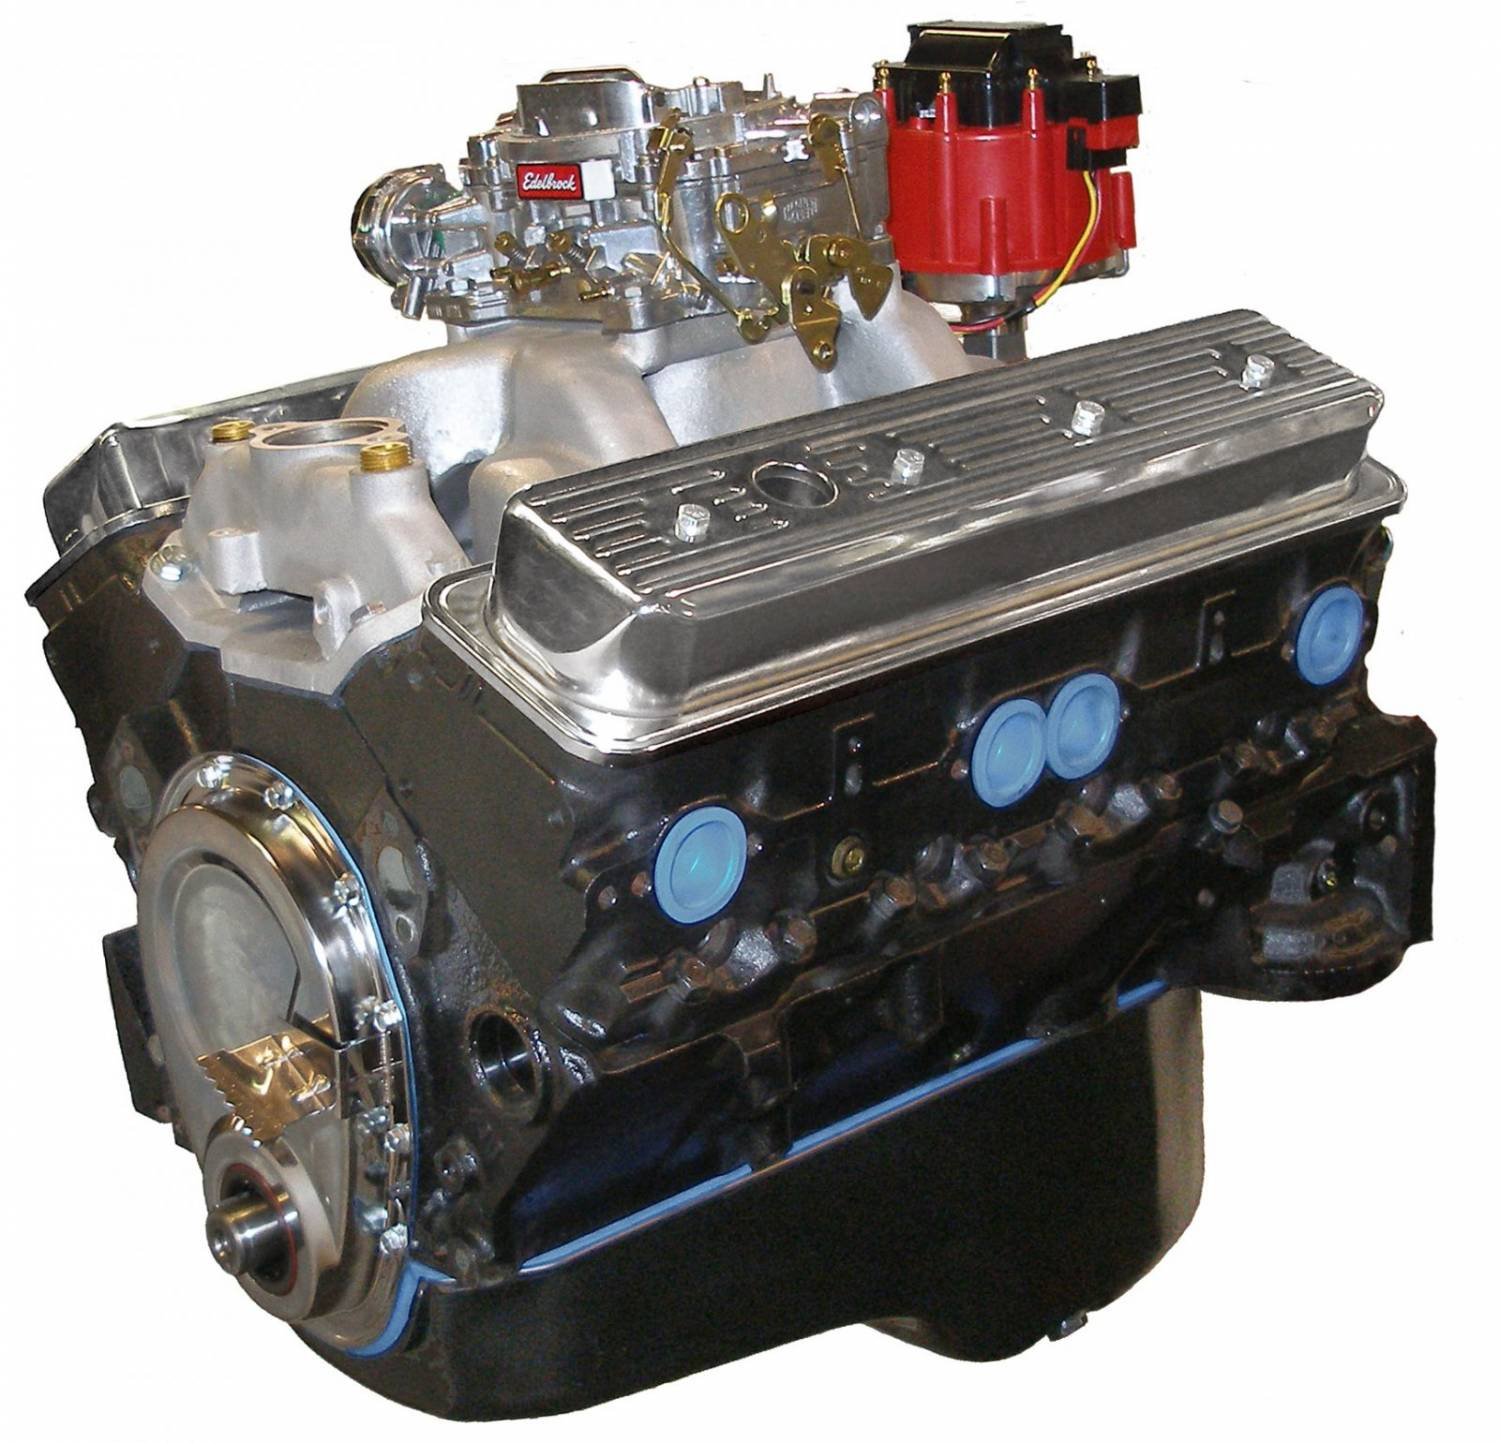 Bp3830ctc1s blueprint engines 383ci stroker crate engine small blue print bp3830ctc1s blueprint engines 383ci stroker crate engine small block gm style malvernweather Choice Image